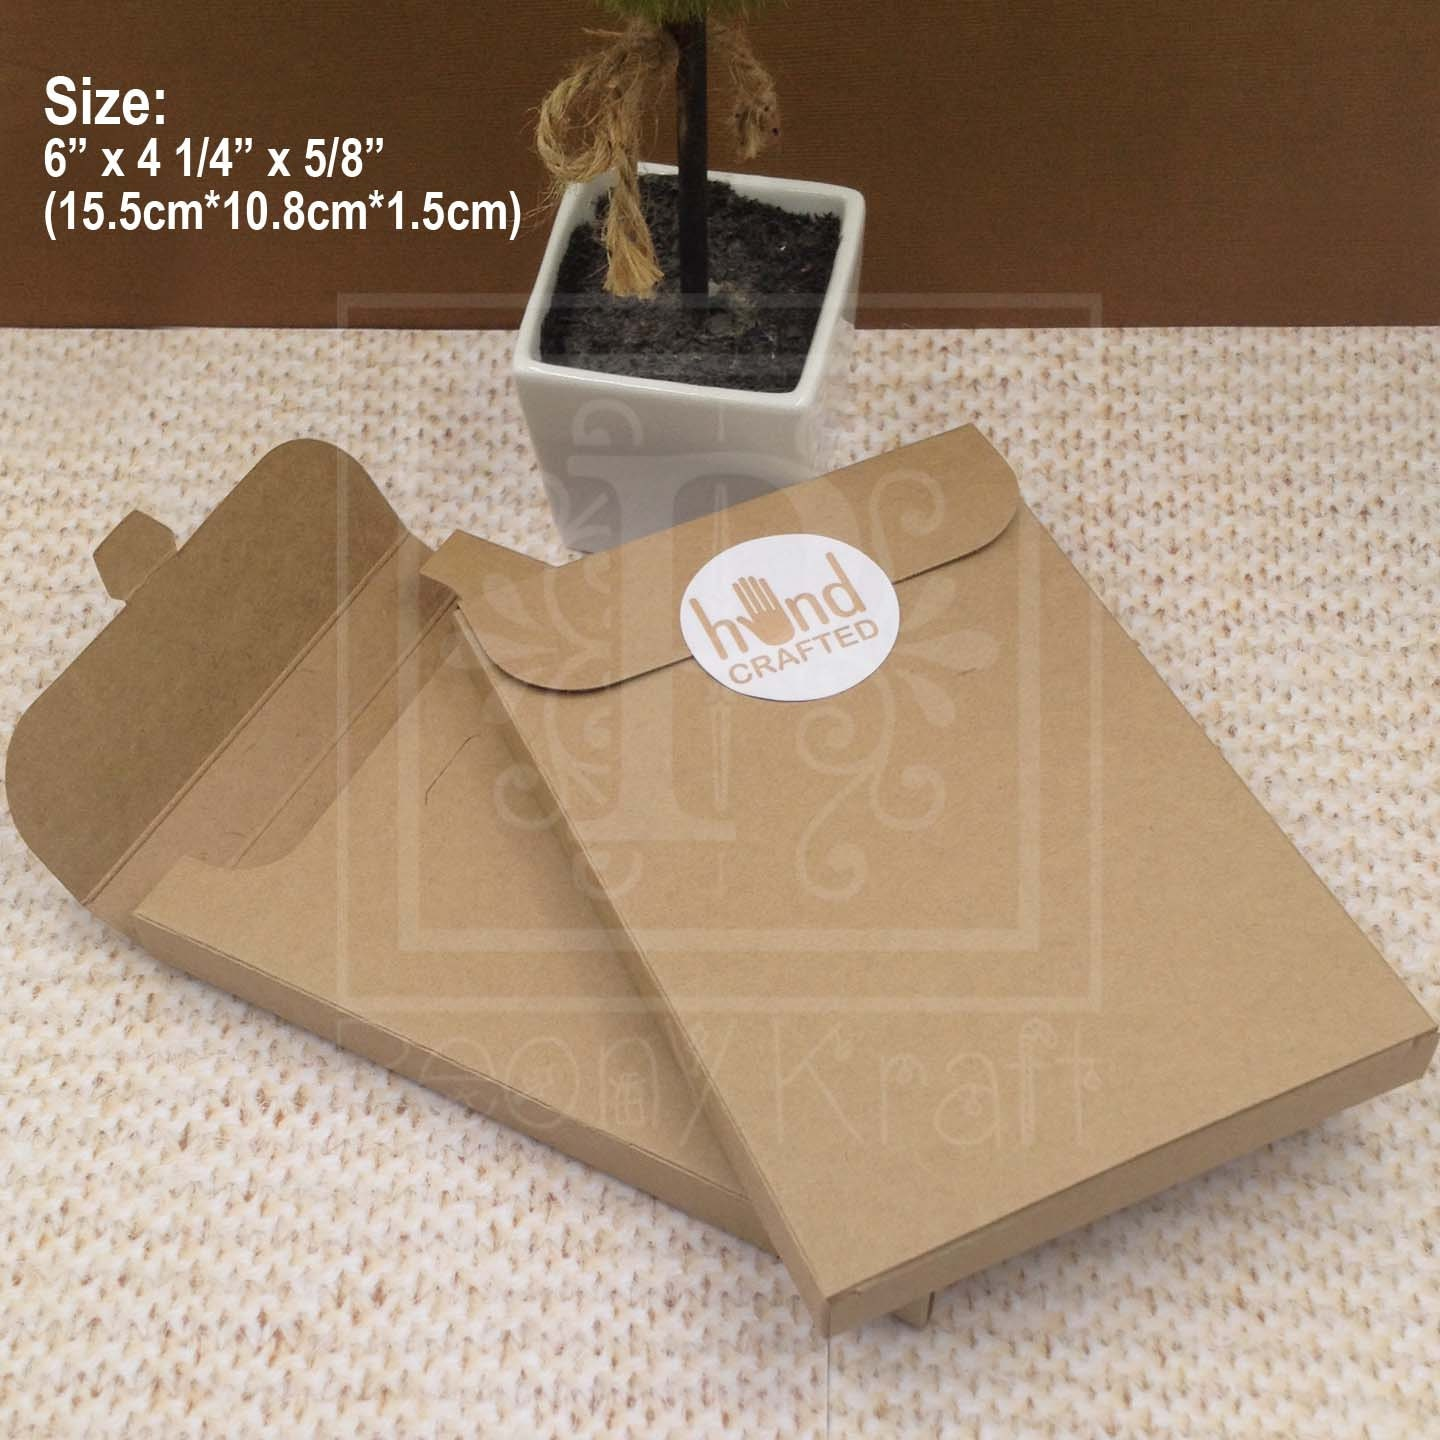 25pcs flat kraft boxes jewelries boxes greeting cards boxes 25pcs flat kraft boxes jewelries boxes greeting cards boxes notecards boxes birthday card boxes handkerchiefs boxes postcards boxes from peonykraft m4hsunfo